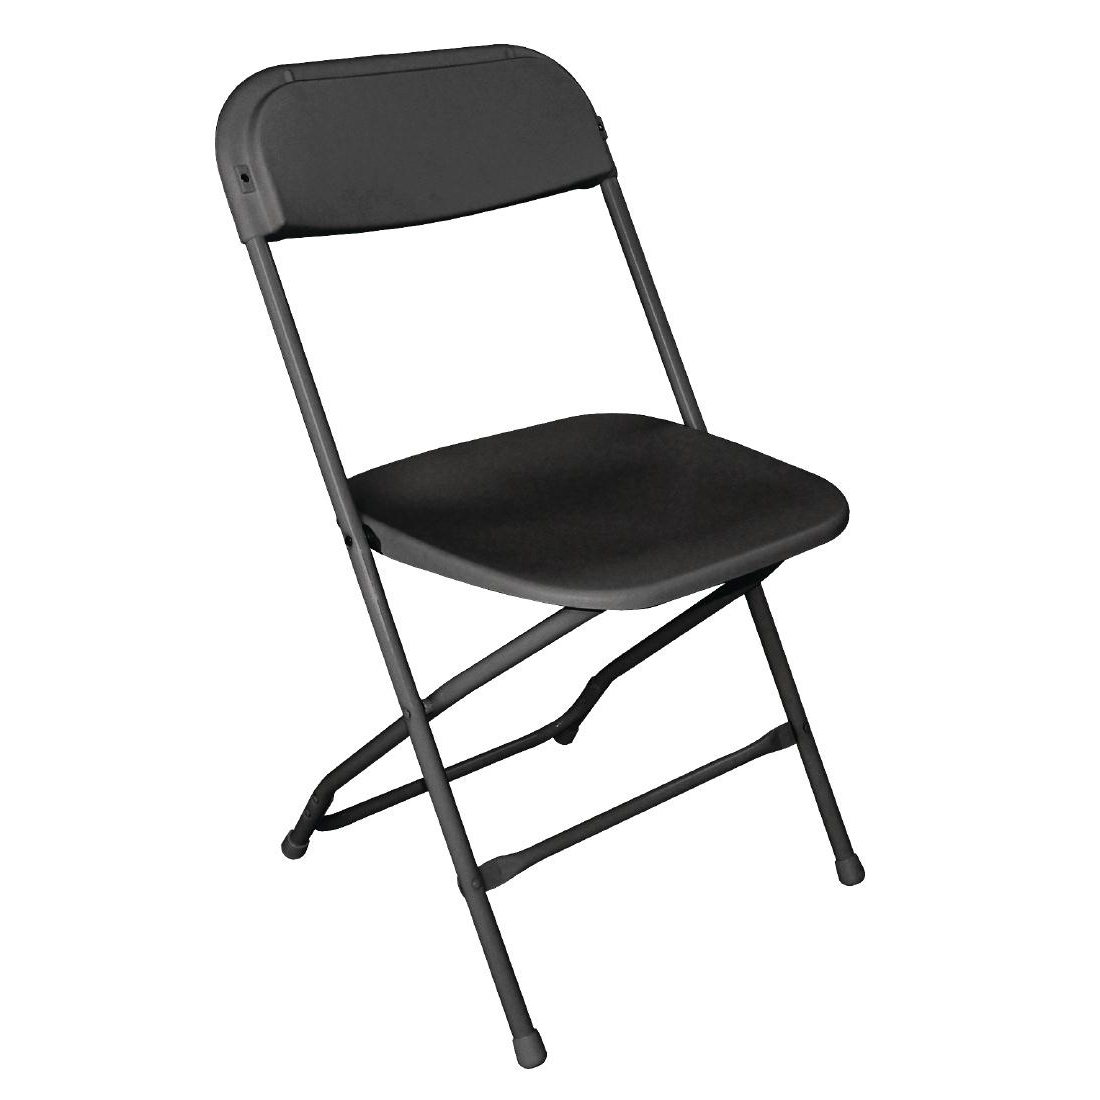 Bolero Folding Chair Black (Pack of 10)